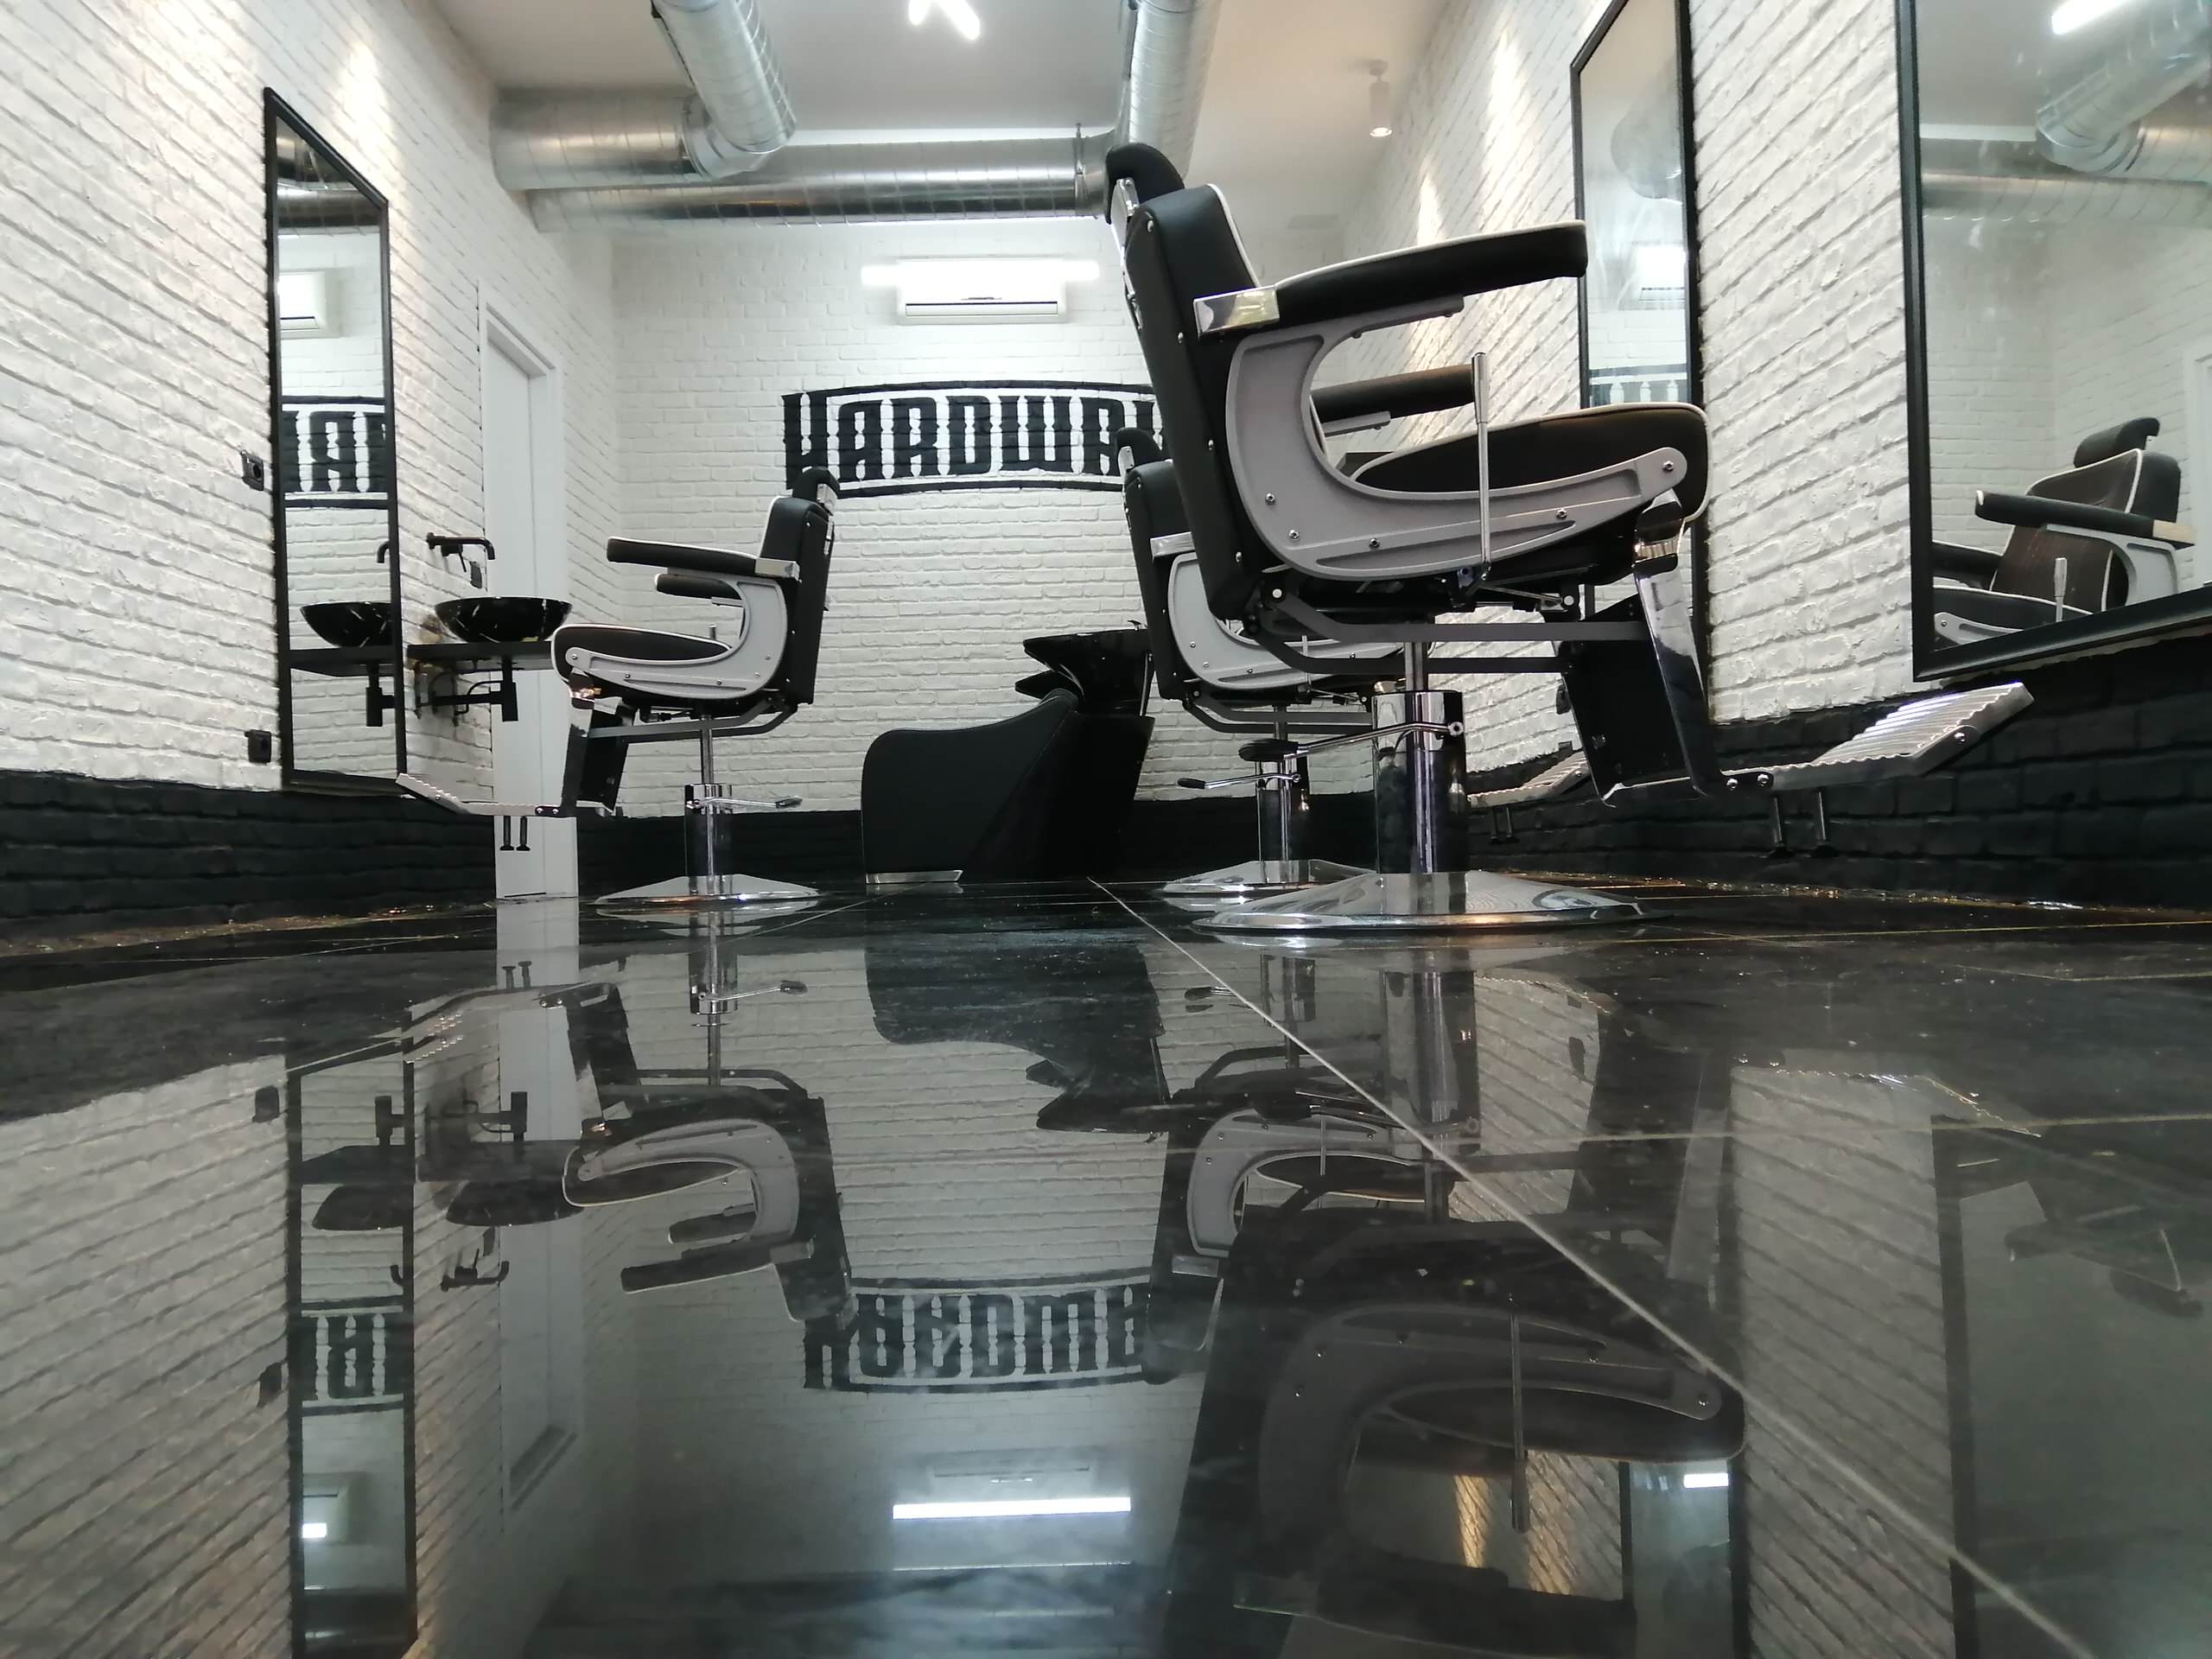 Barber shop industrial style